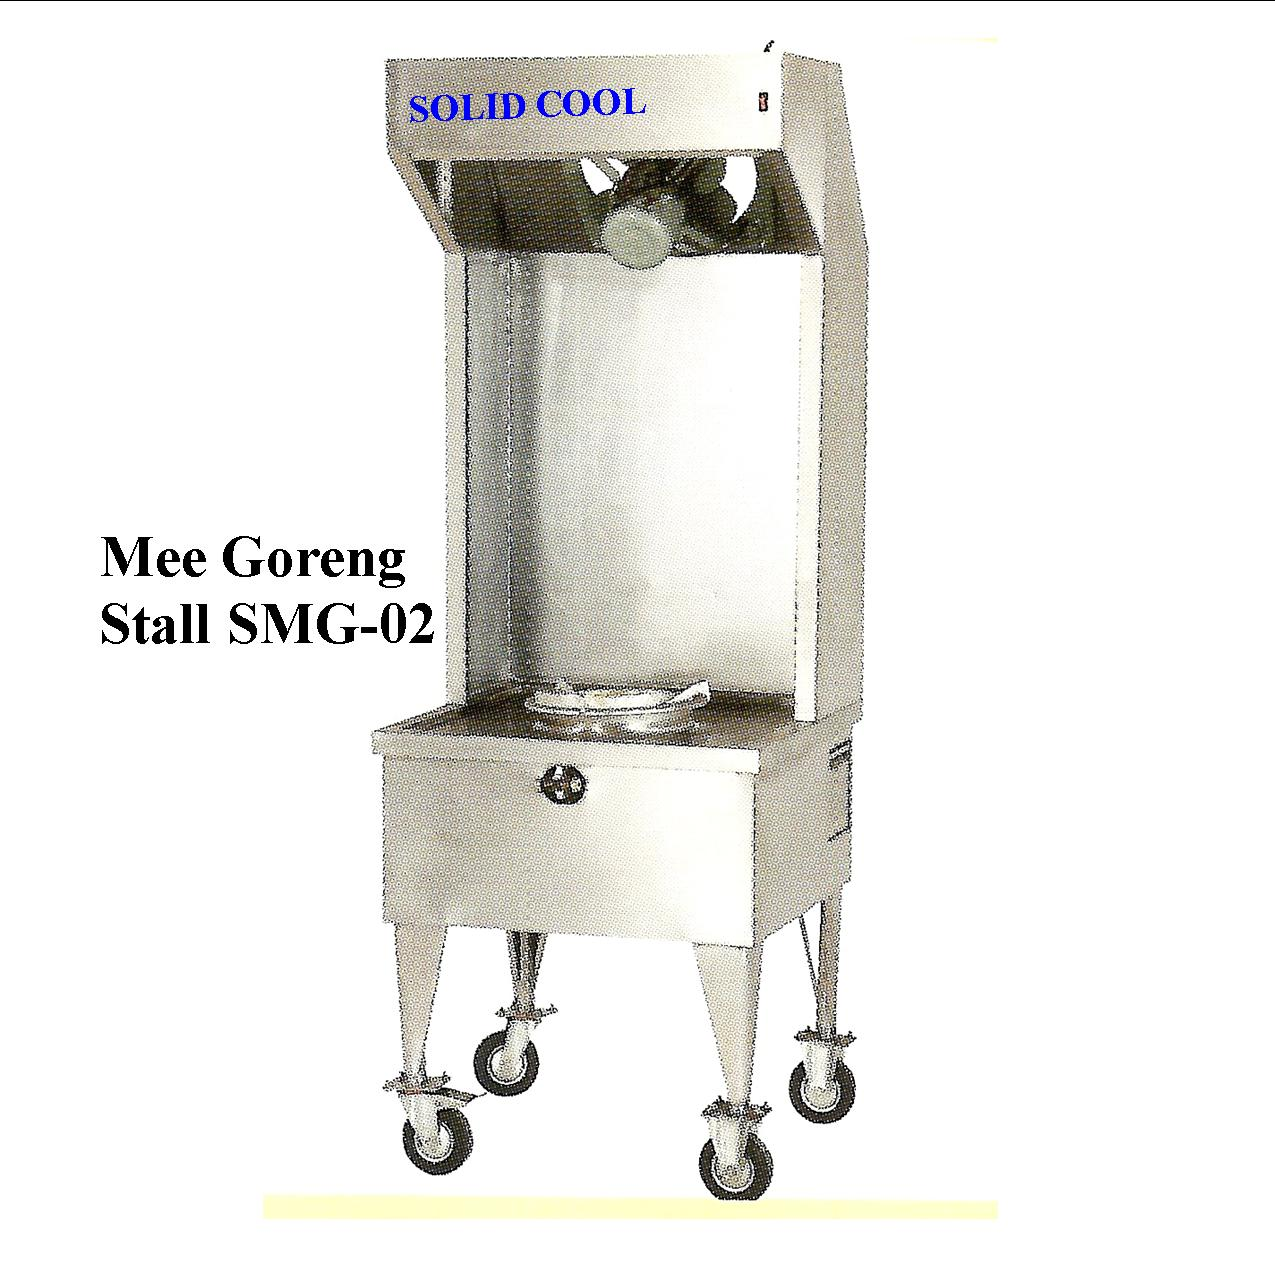 Commercial Refrigerator Maintenance Malaysia Air Cooler